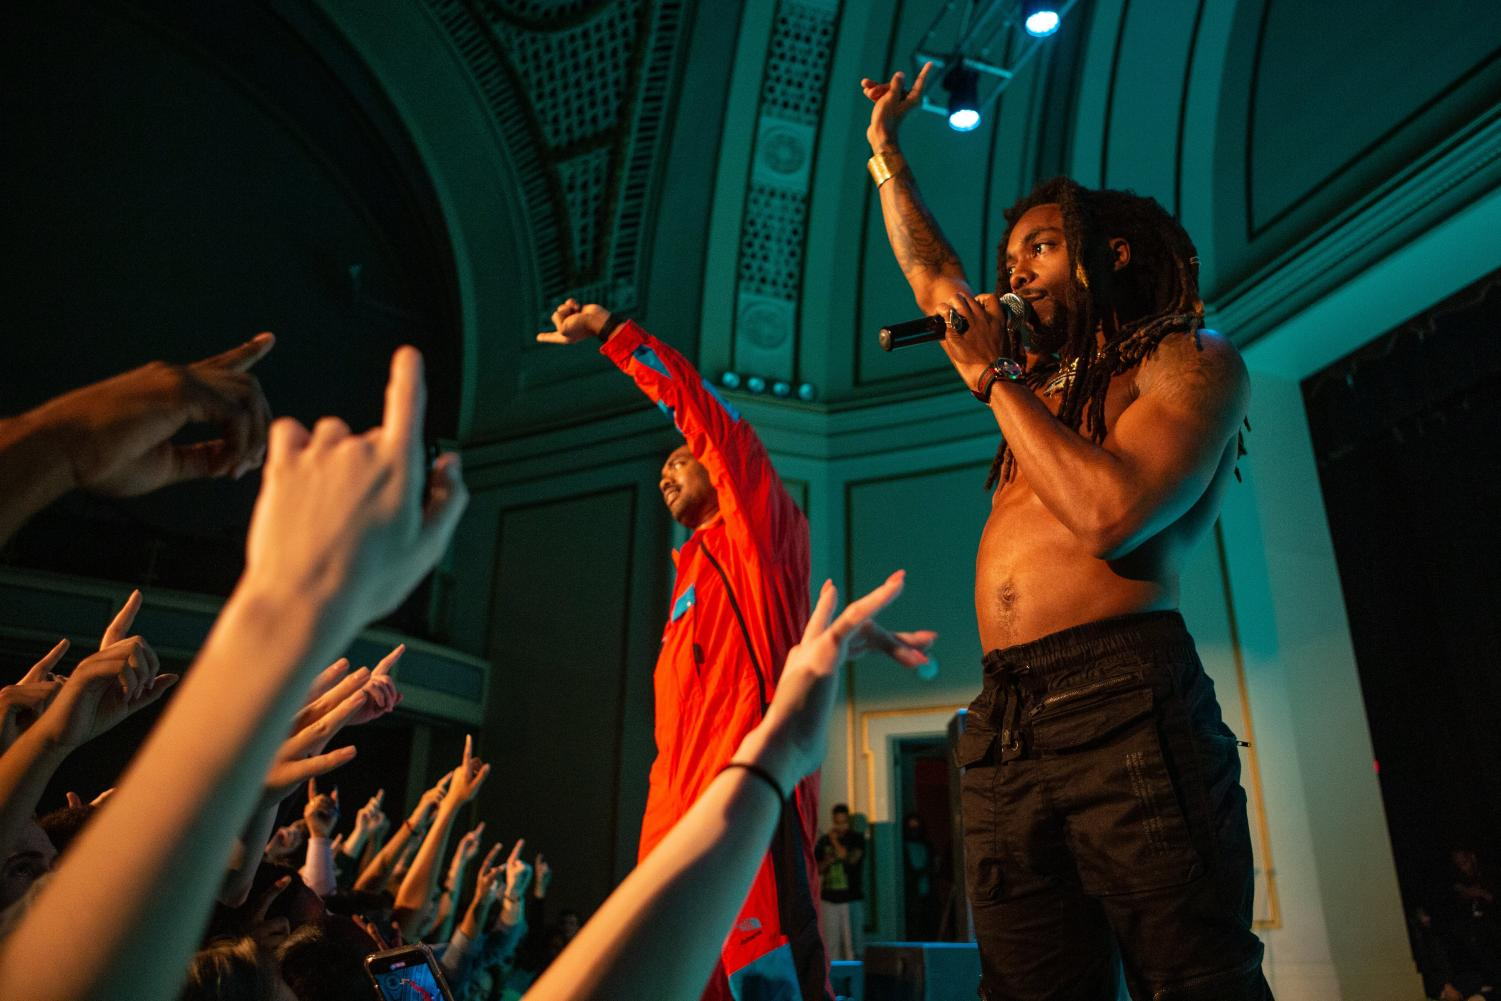 Members+of+EarthGang+raise+their+hands+to+hype+up+the+crowd.